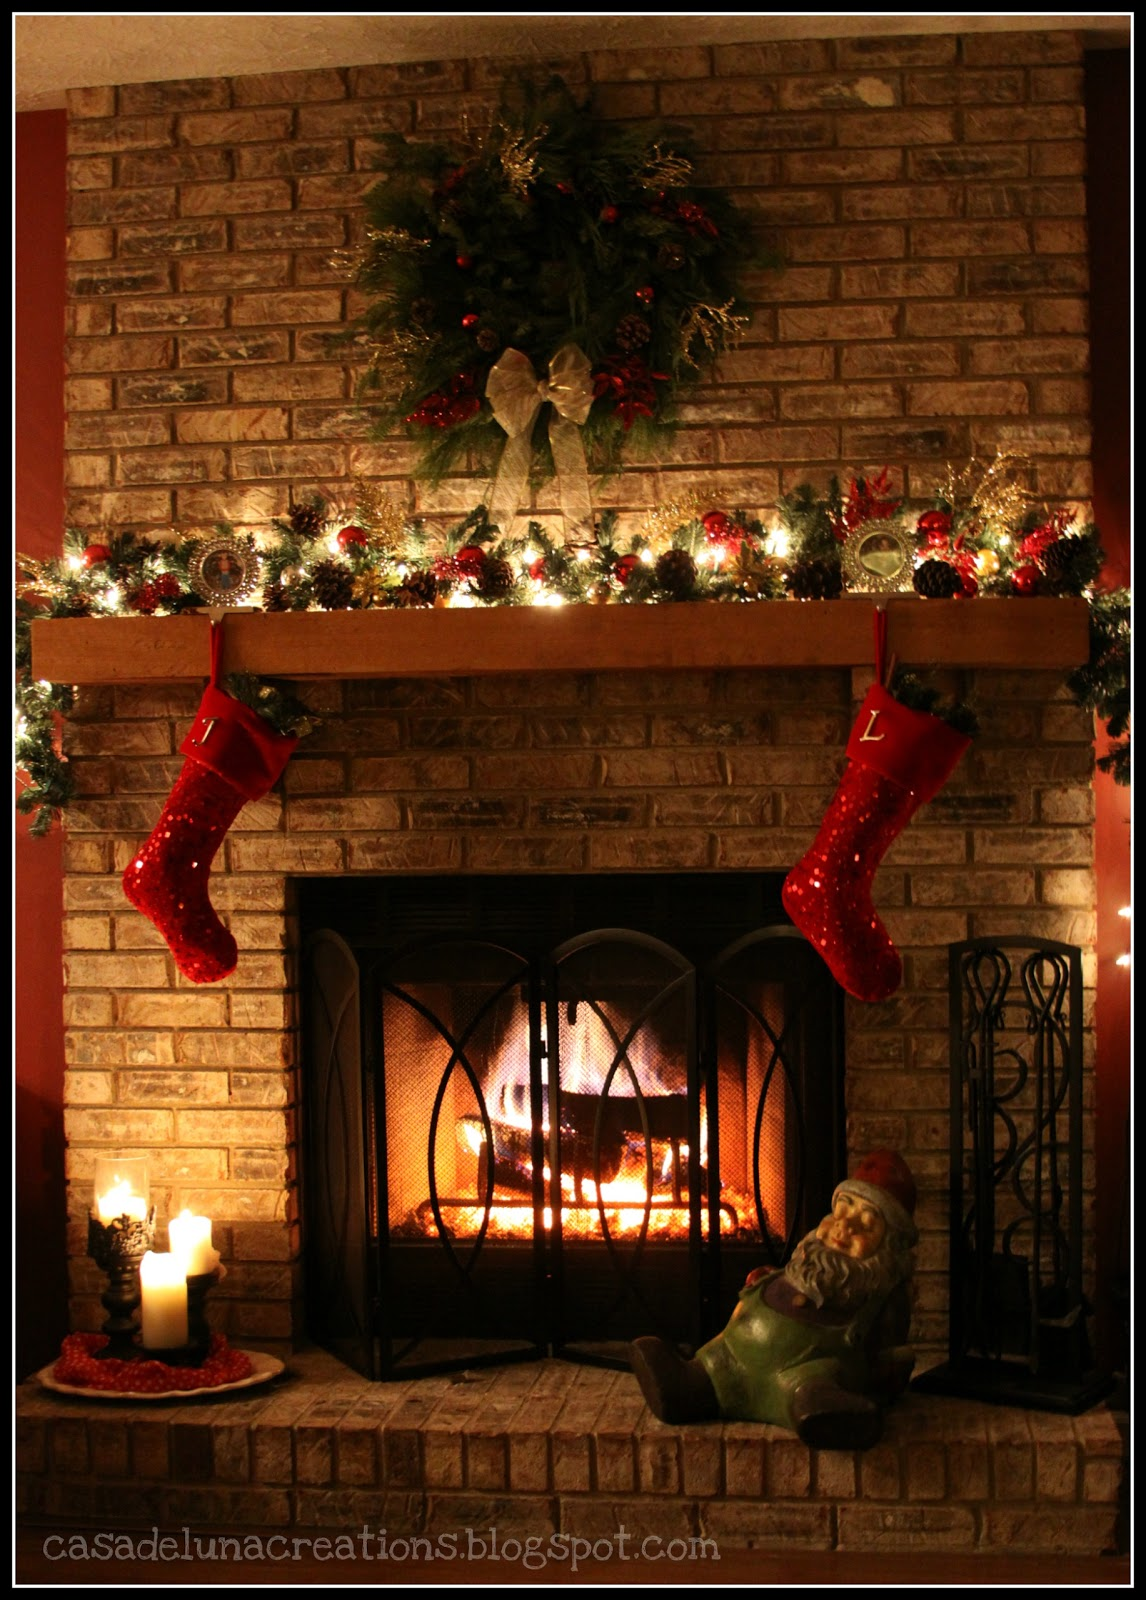 Casa de Luna Creations: Christmas Mantel